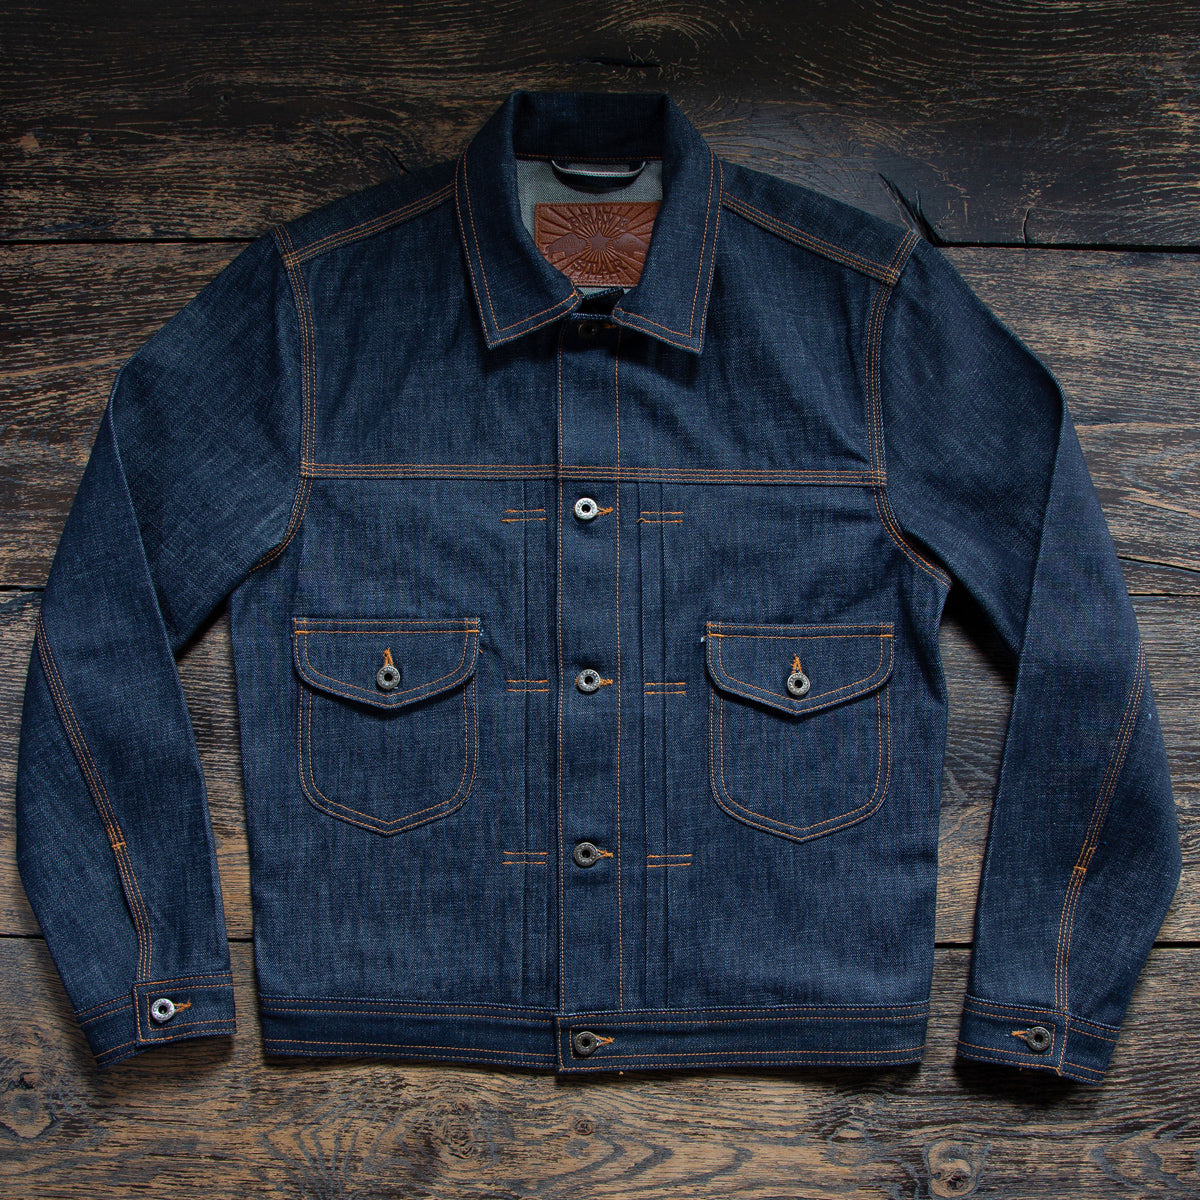 The Badlands Denim Jacket in 13oz 'Blue Collar' Cone Mills Selvage